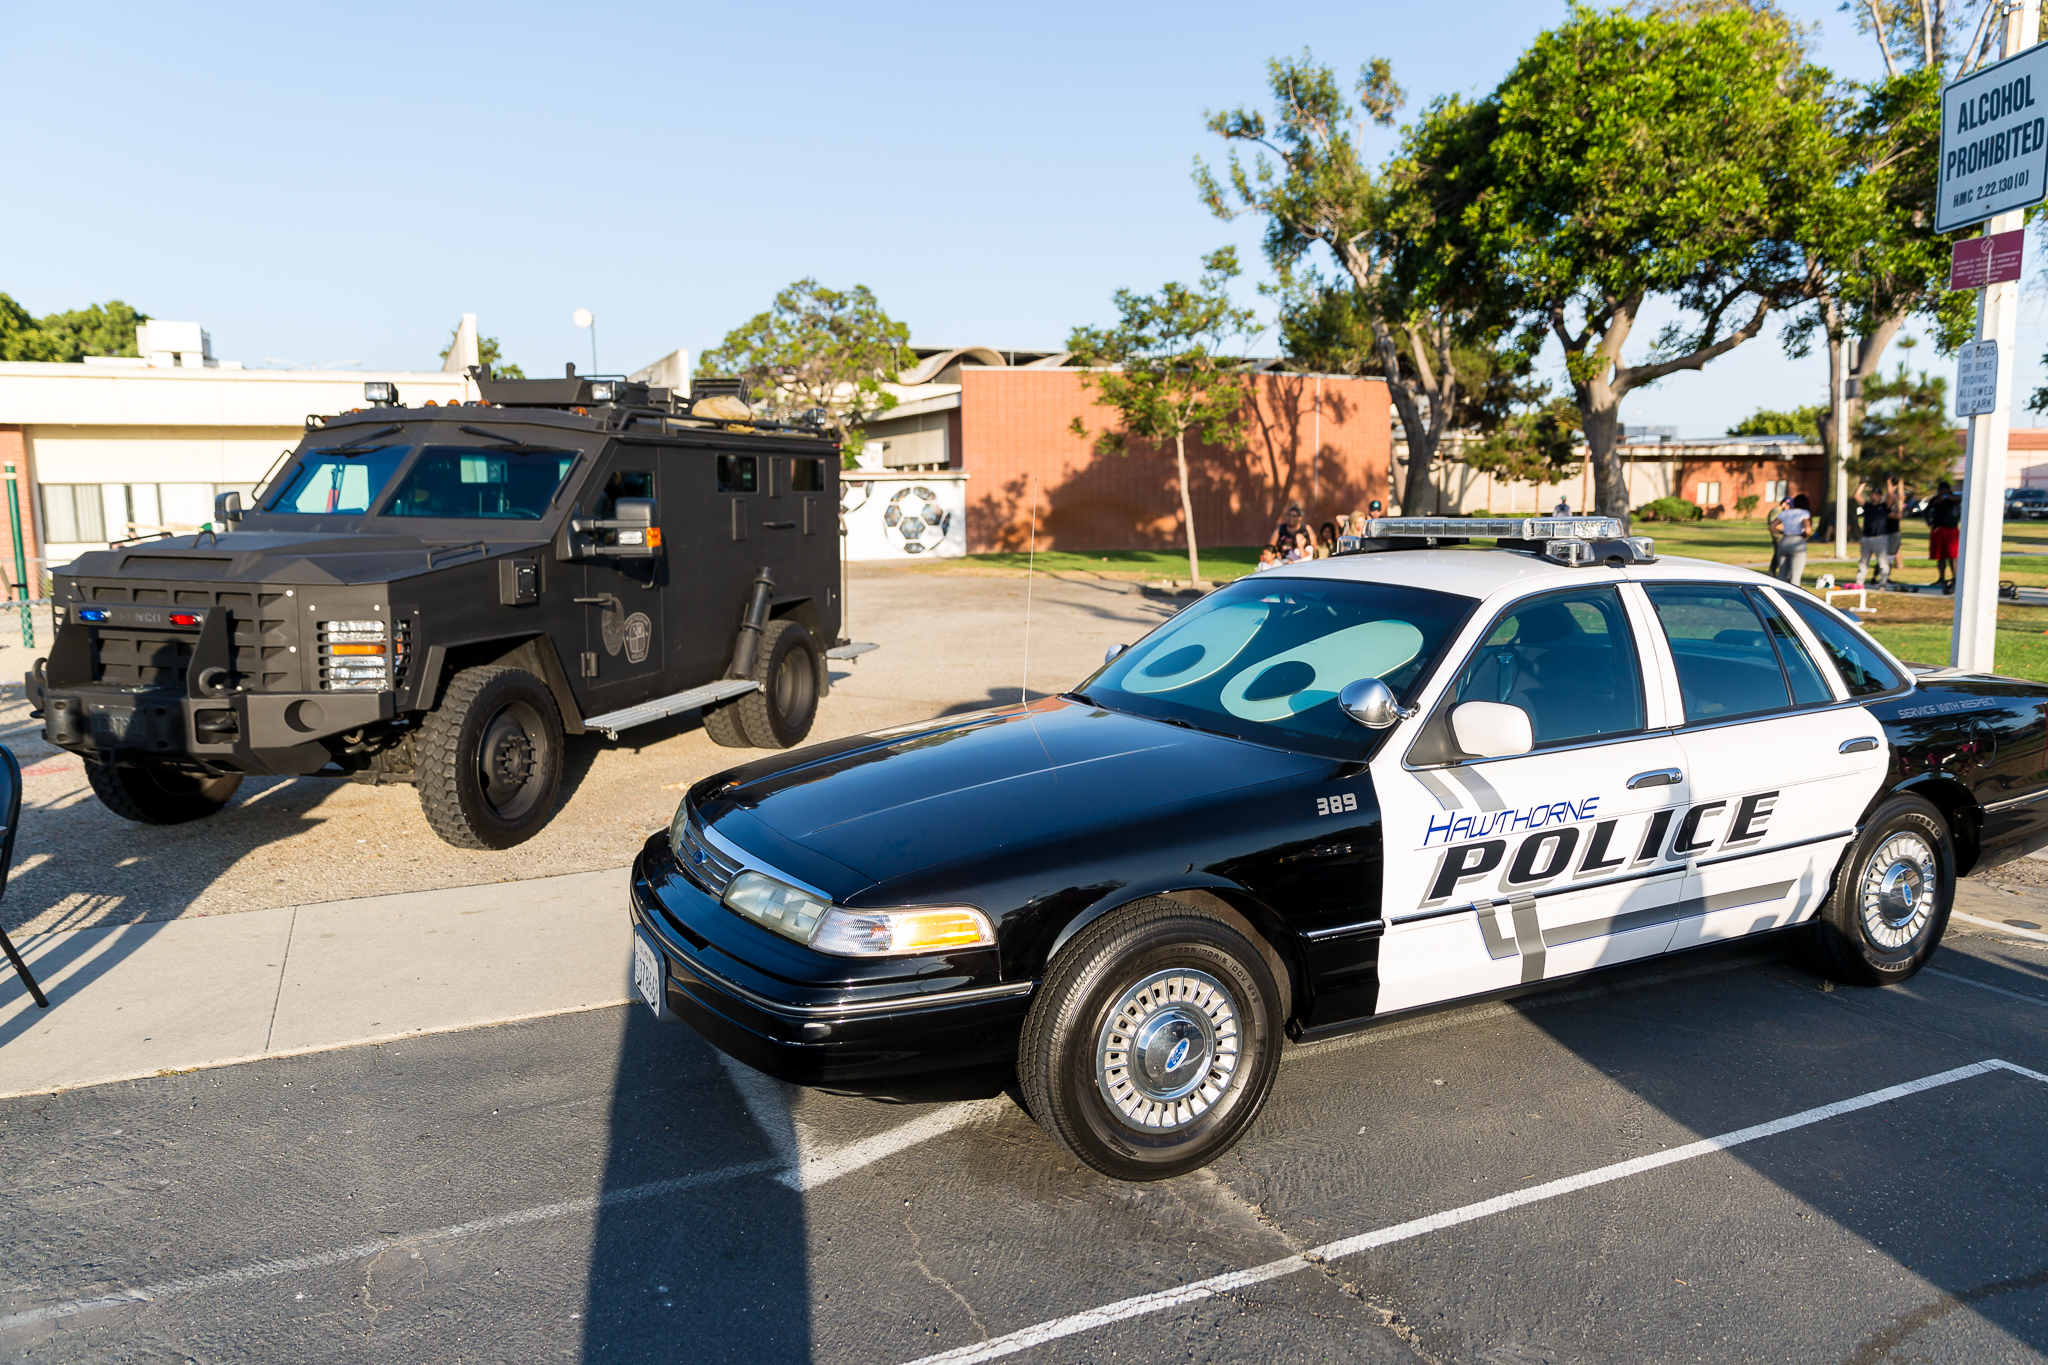 Police and Swat cars